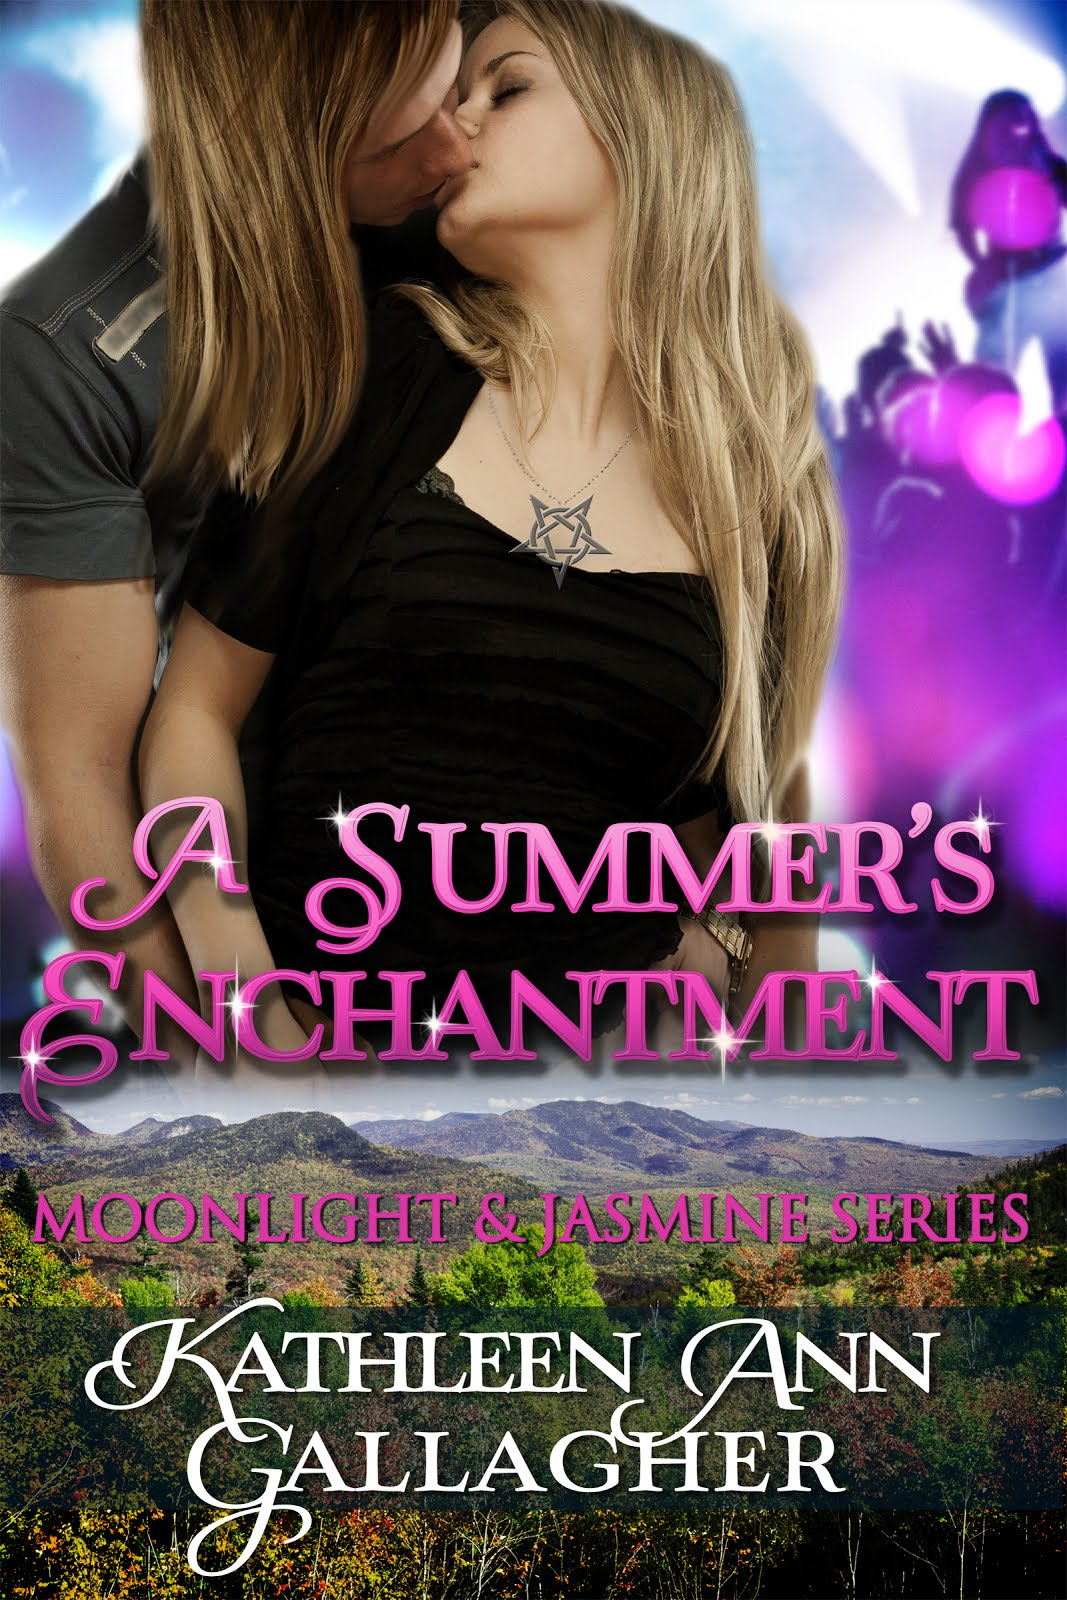 A SUMMER'S ENCHANTMENT